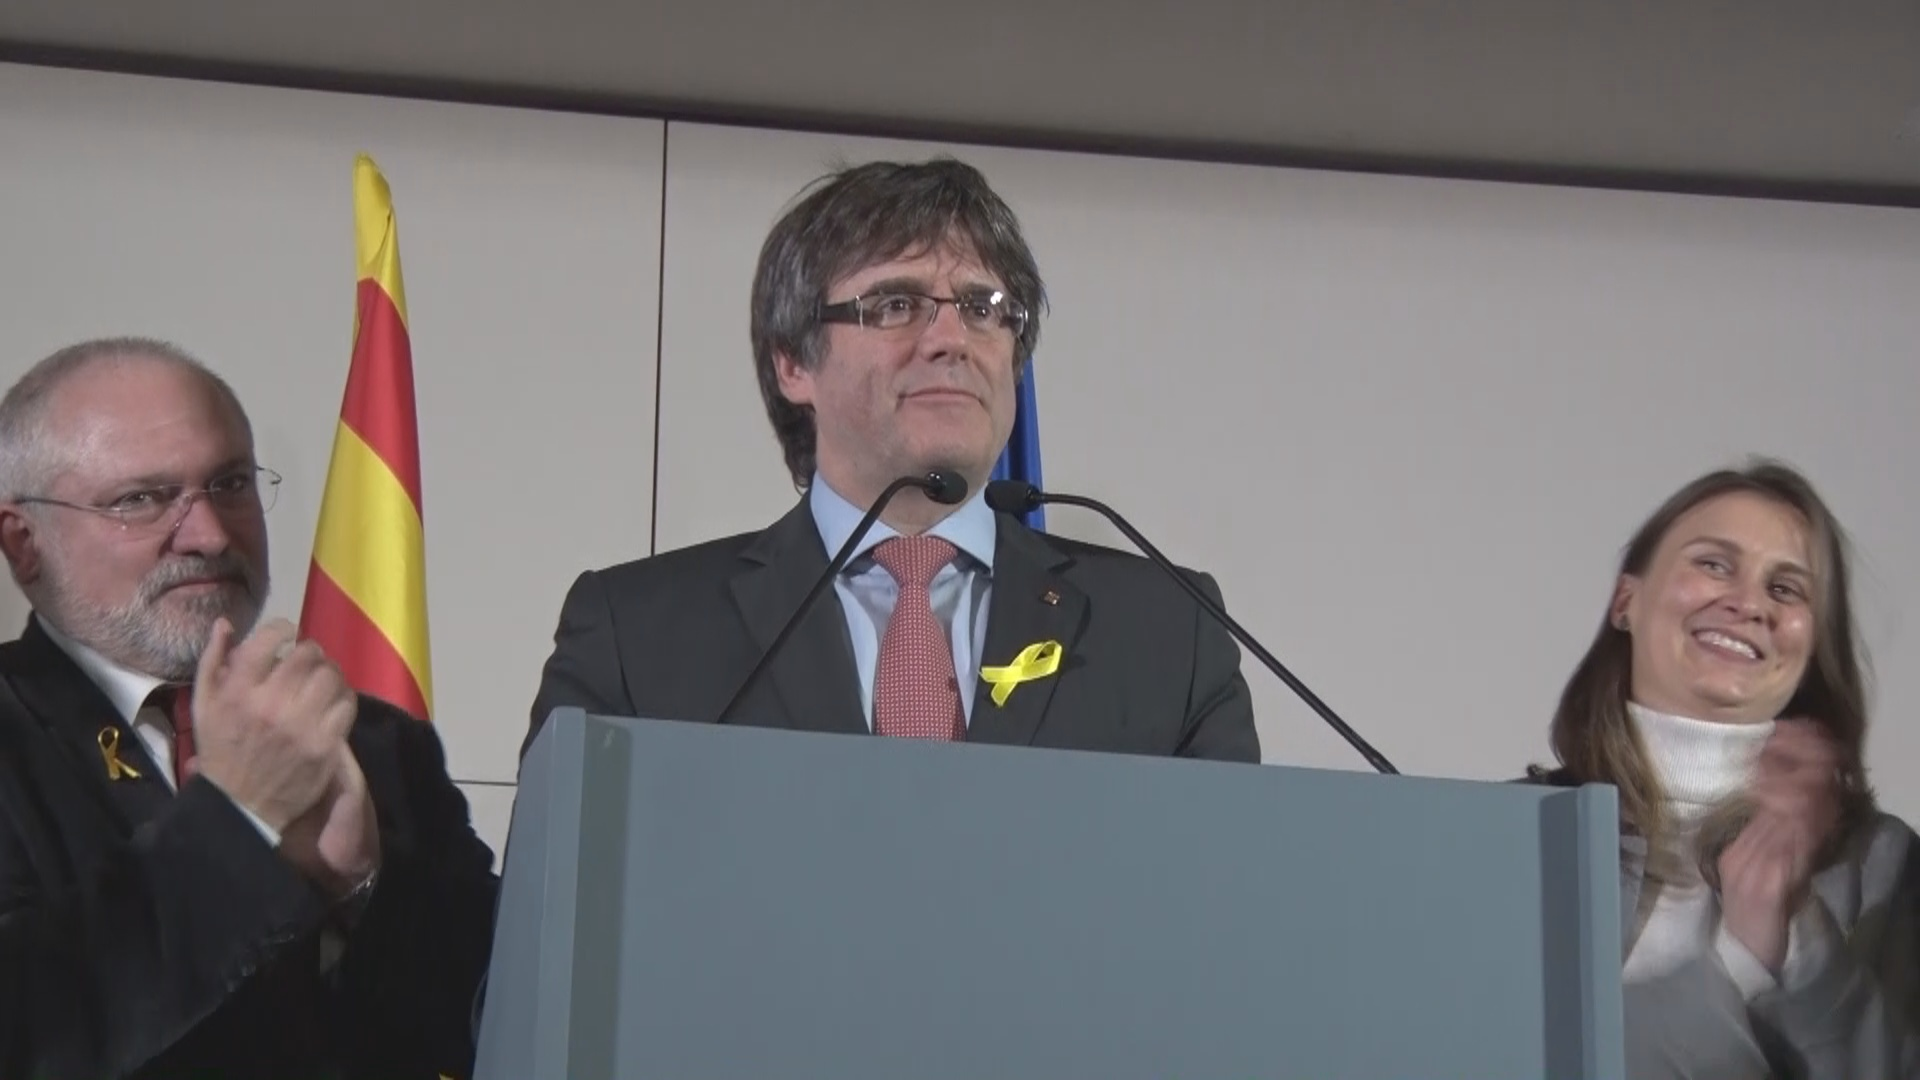 Rajoy dismisses Puigdemont's call for meeting